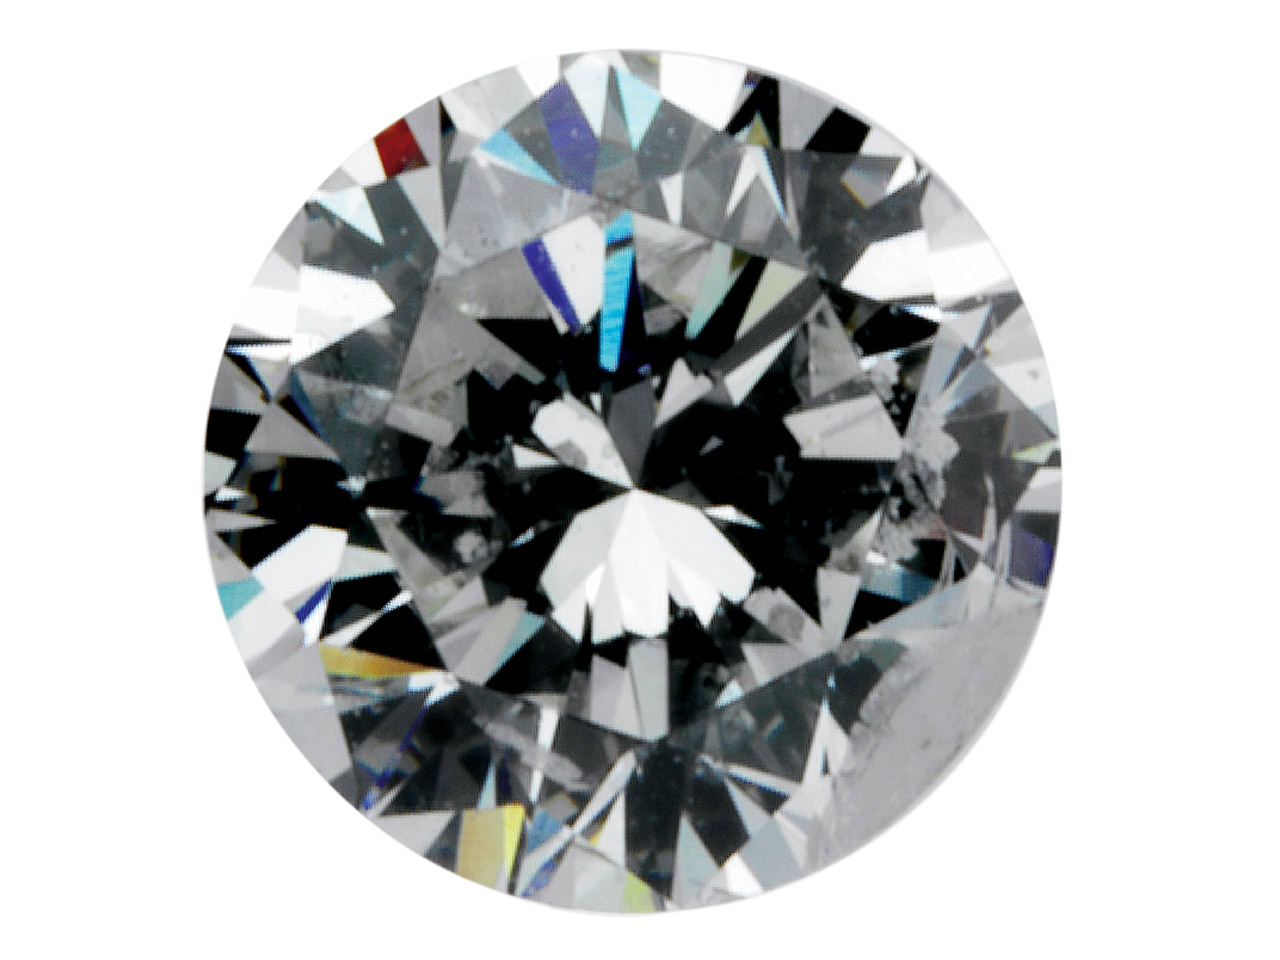 Diamond, Round, H/si, 0.5pt/1mm